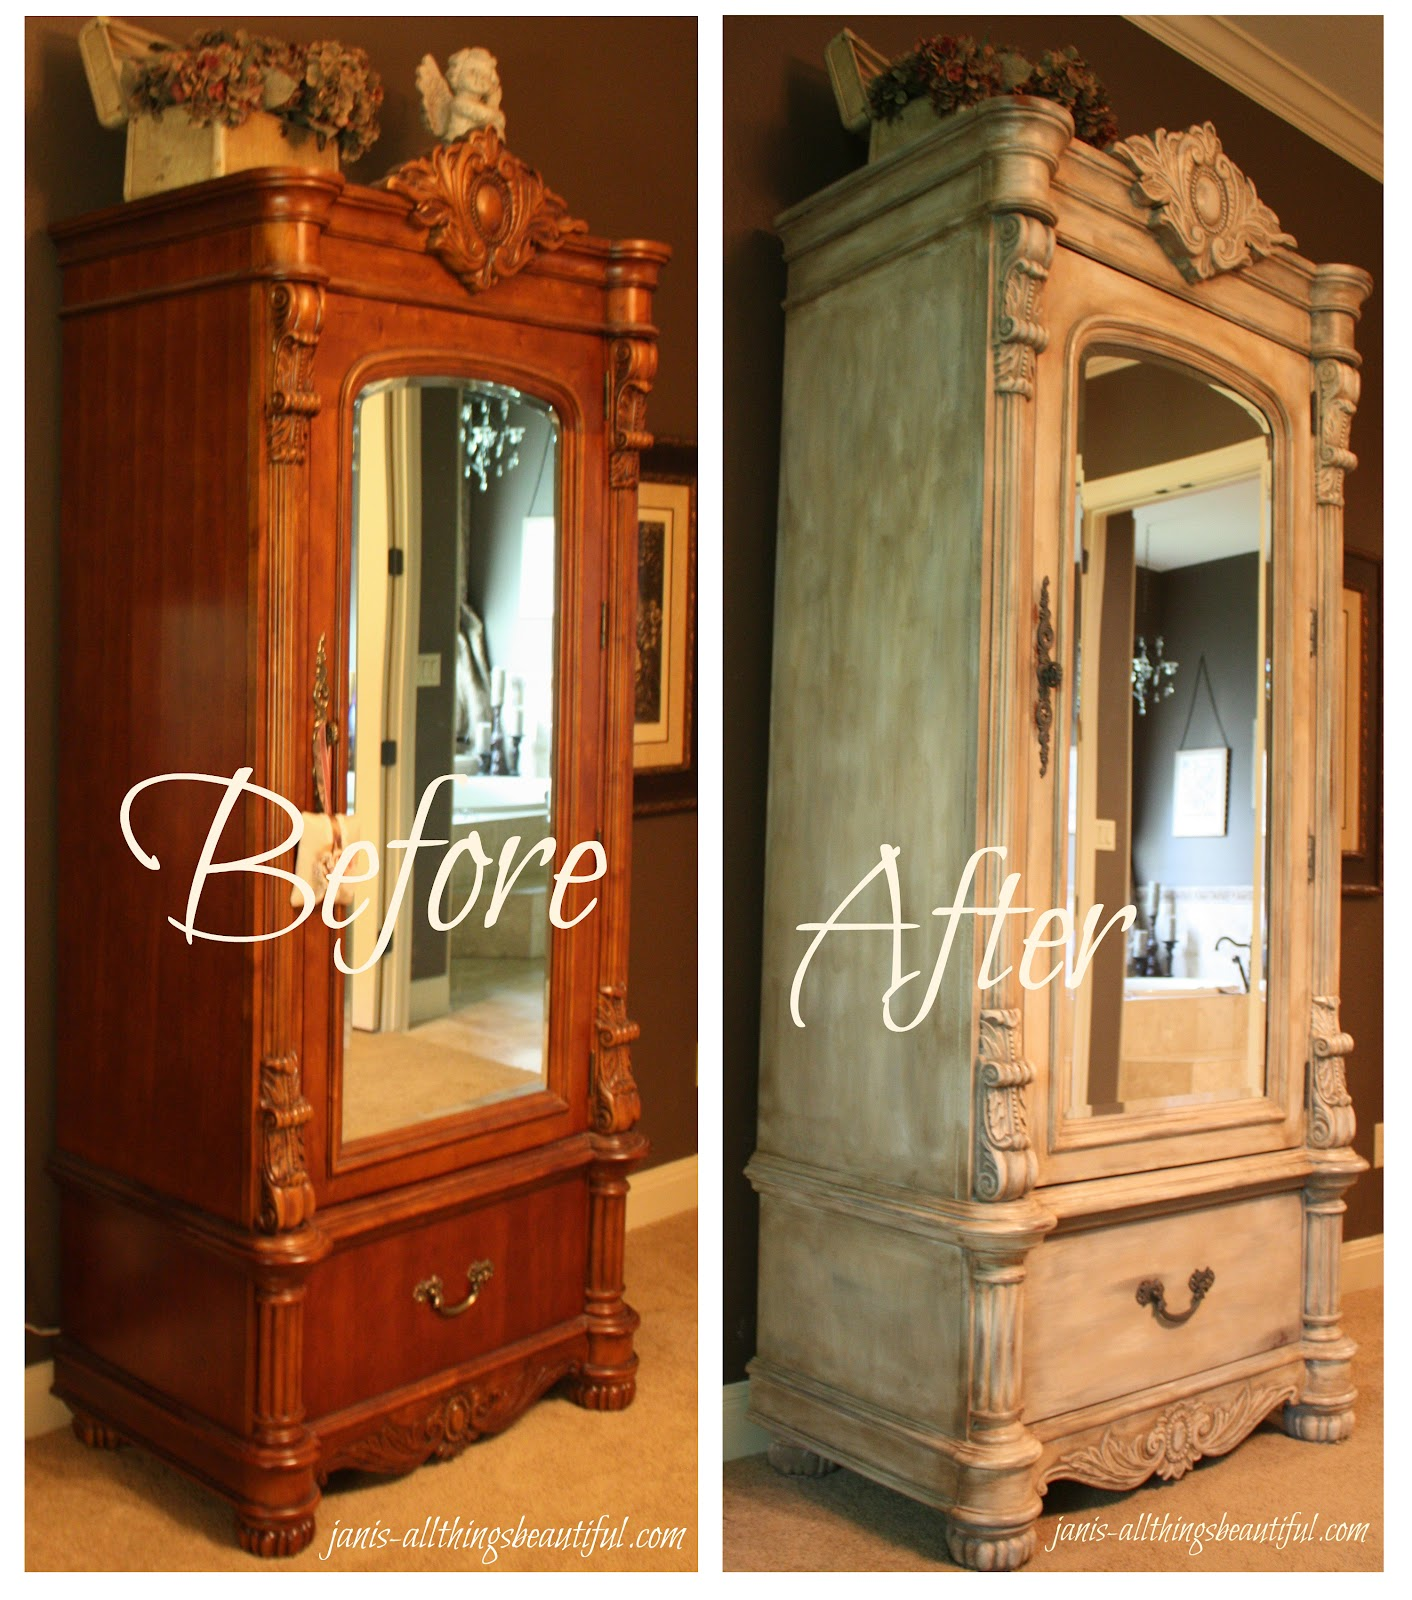 All things beautiful armoire painted furniture makeover Images of painted furniture